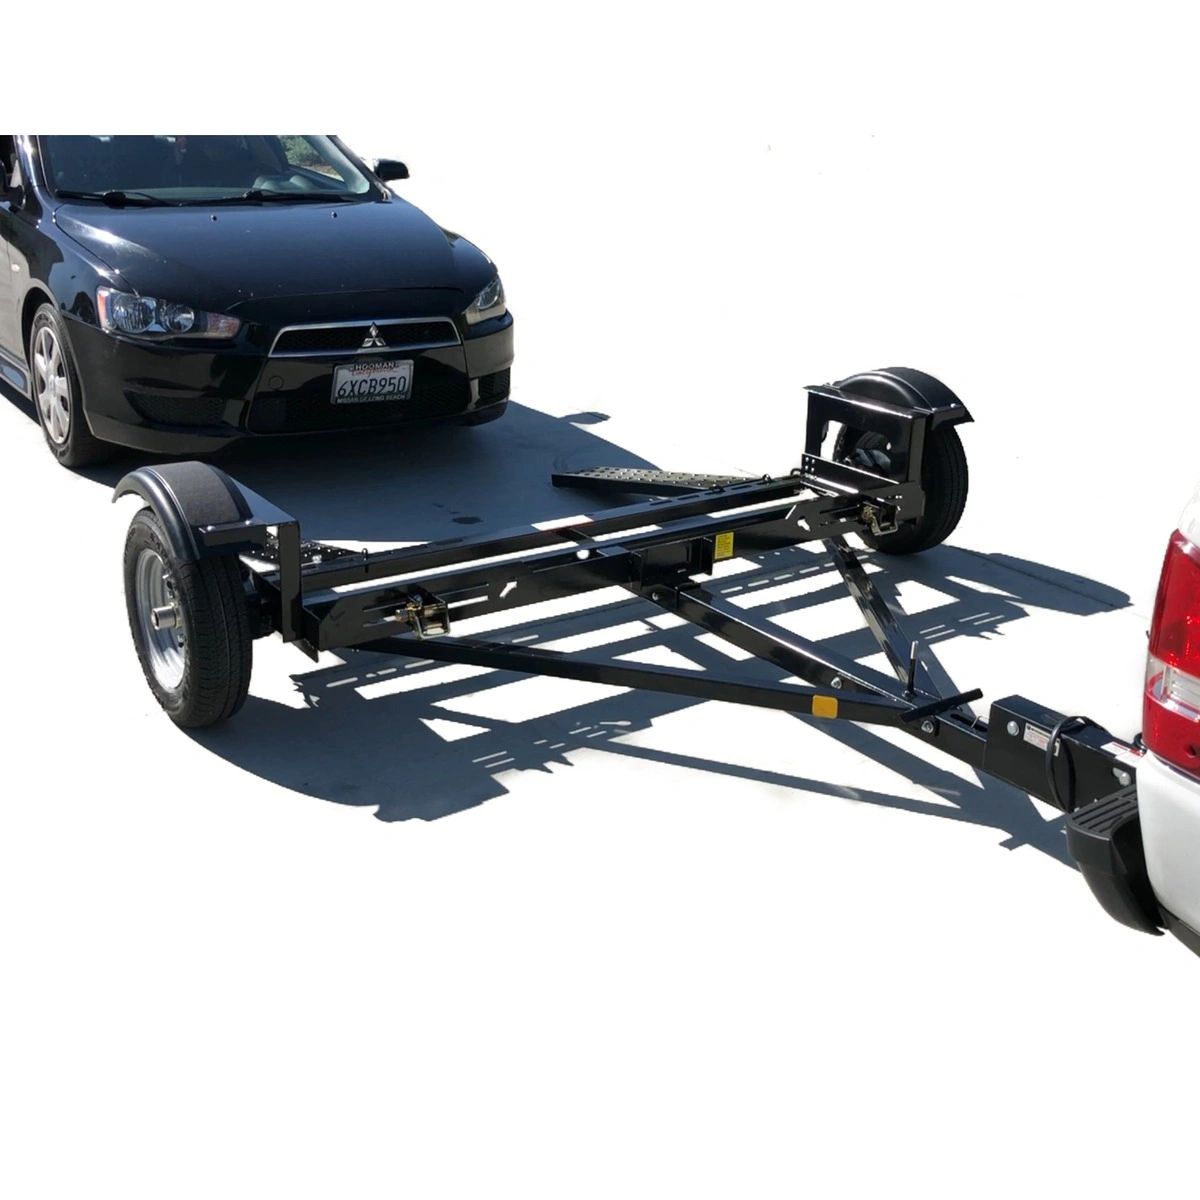 EZ-Haul Tow Dolly With Surge Disc Brakes